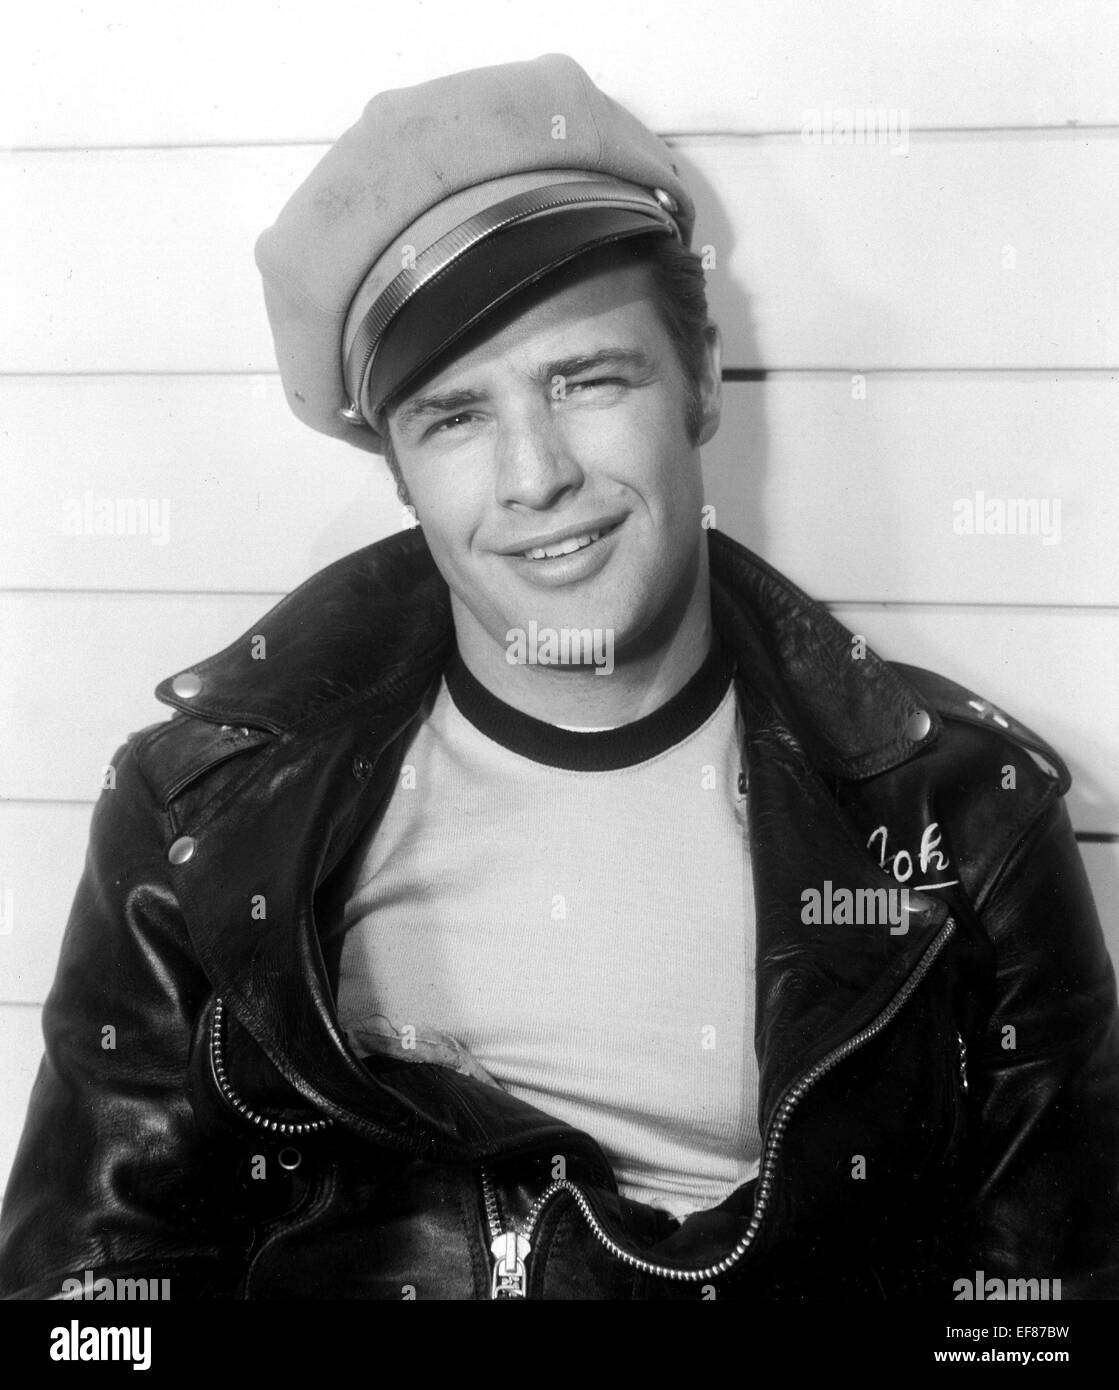 MARLON BRANDO THE WILD ONE (1953 Stock Photo  78242749 - Alamy ba4af929b17